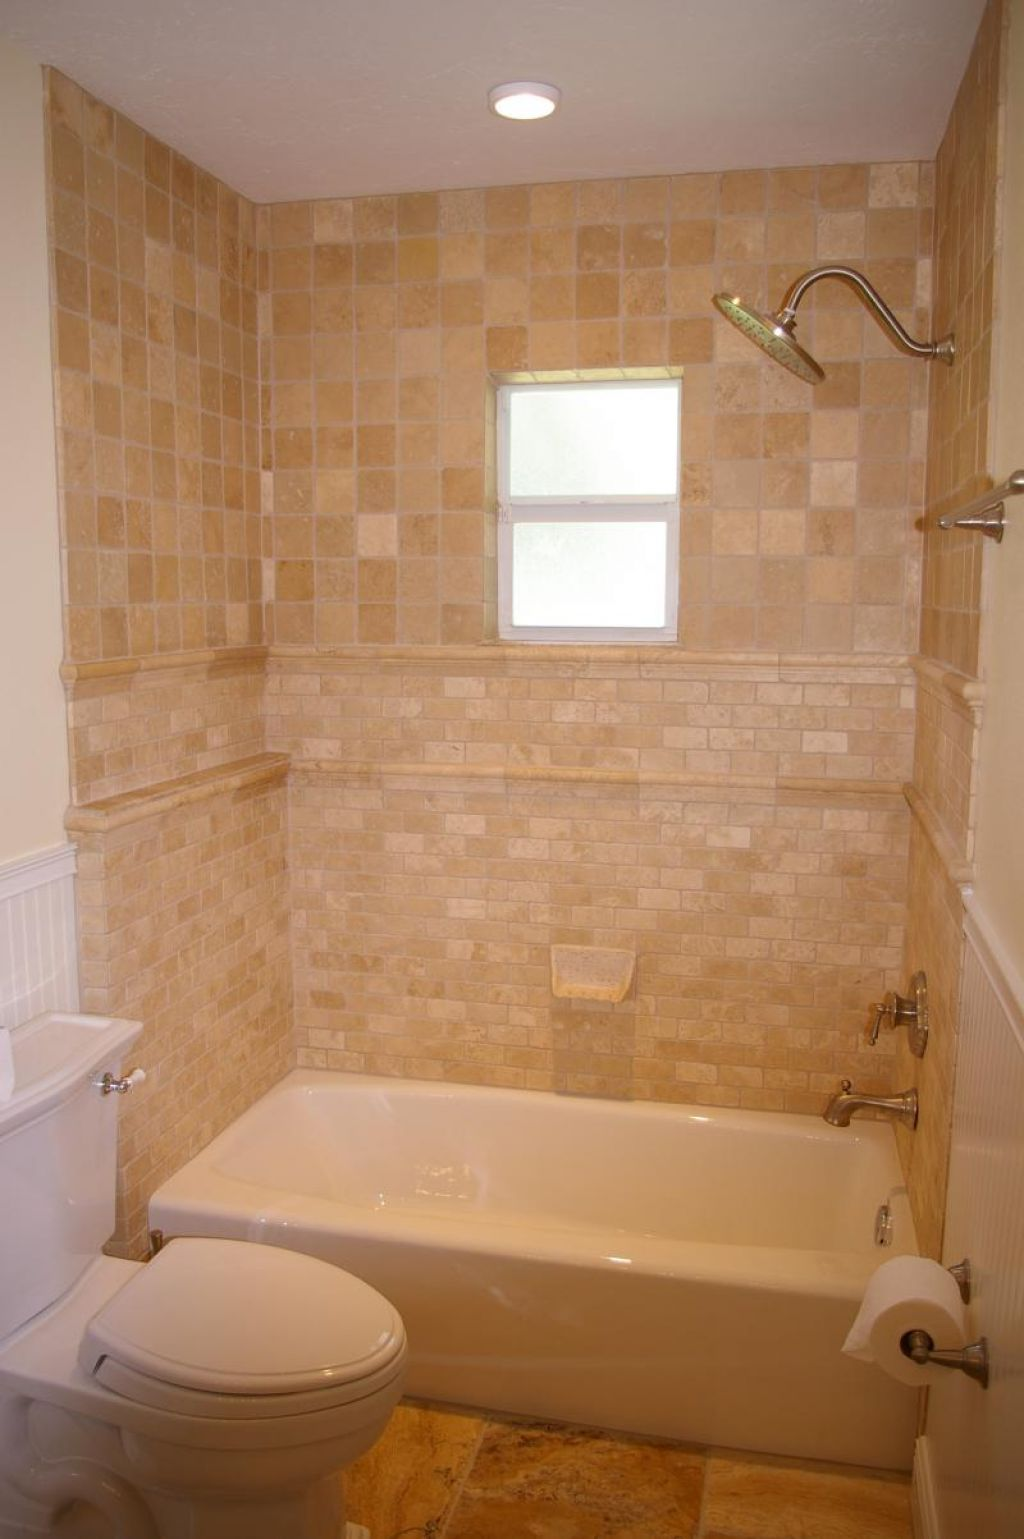 30 shower tile ideas on a budget for Small bathroom design ideas with tub